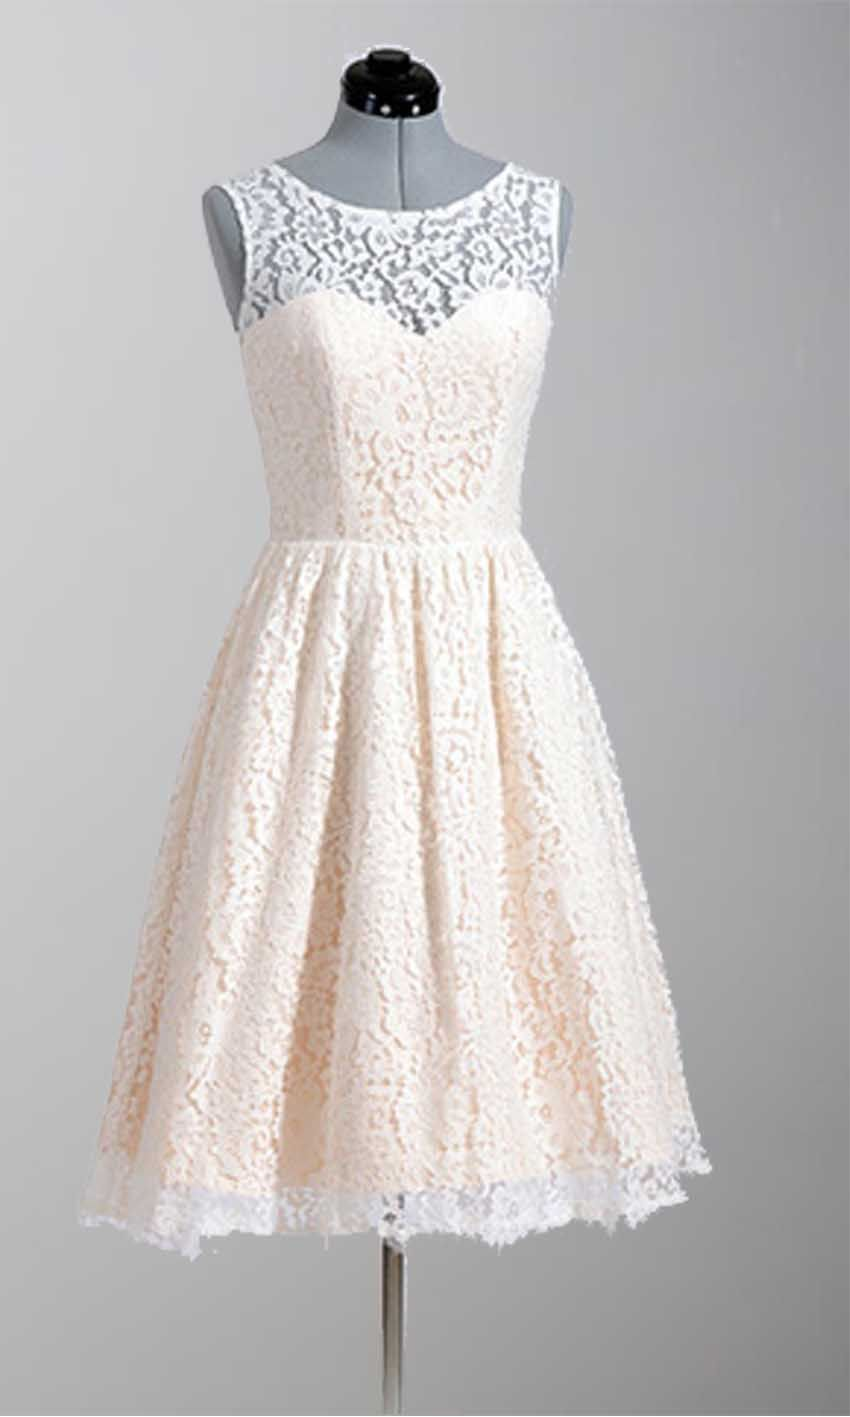 Knee length modern lace vintage wedding party dresses for Modern vintage lace wedding dress